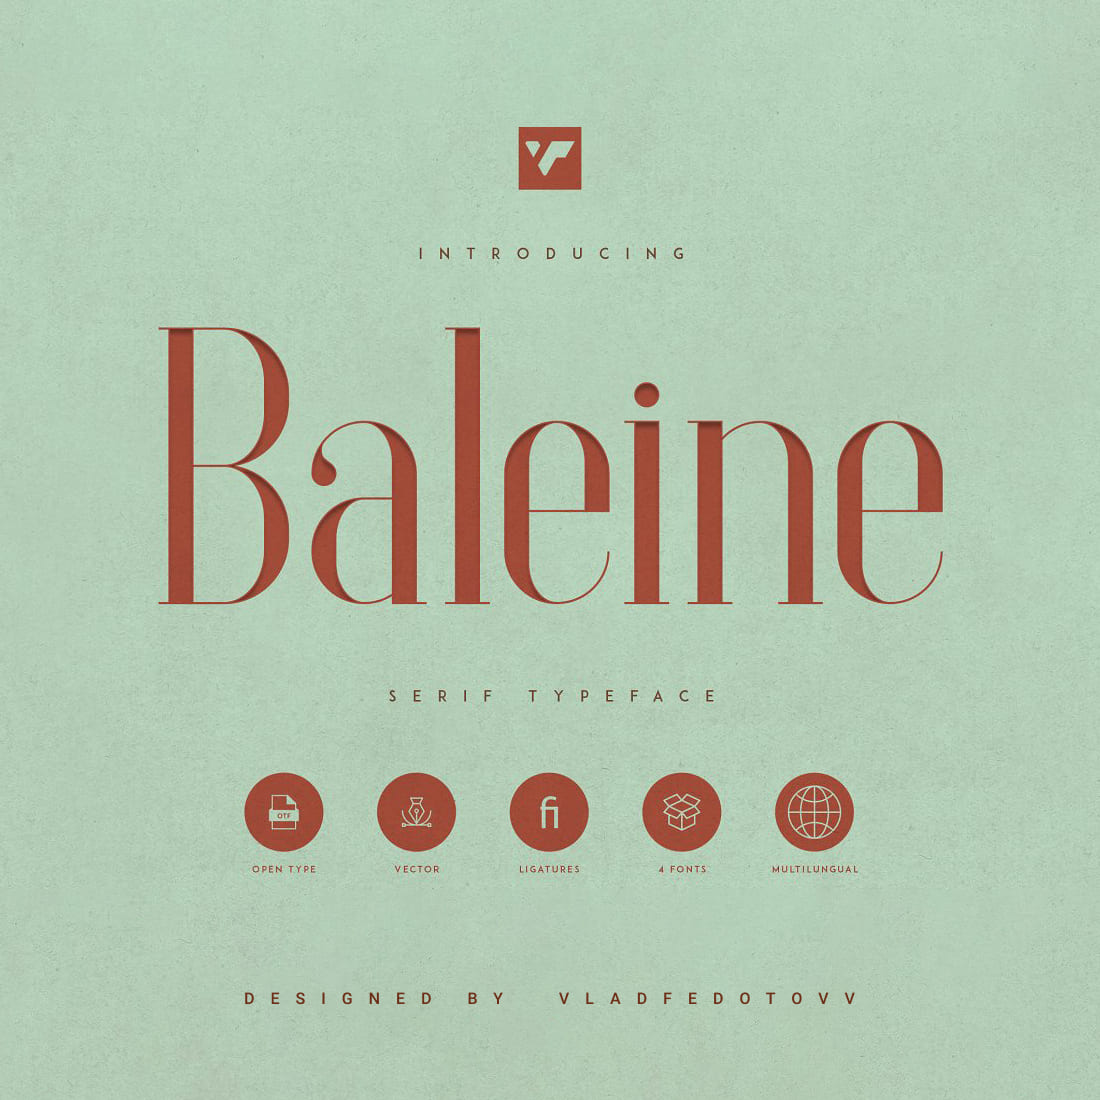 Baleine – Slab Serif Font 4 weights Preview images.